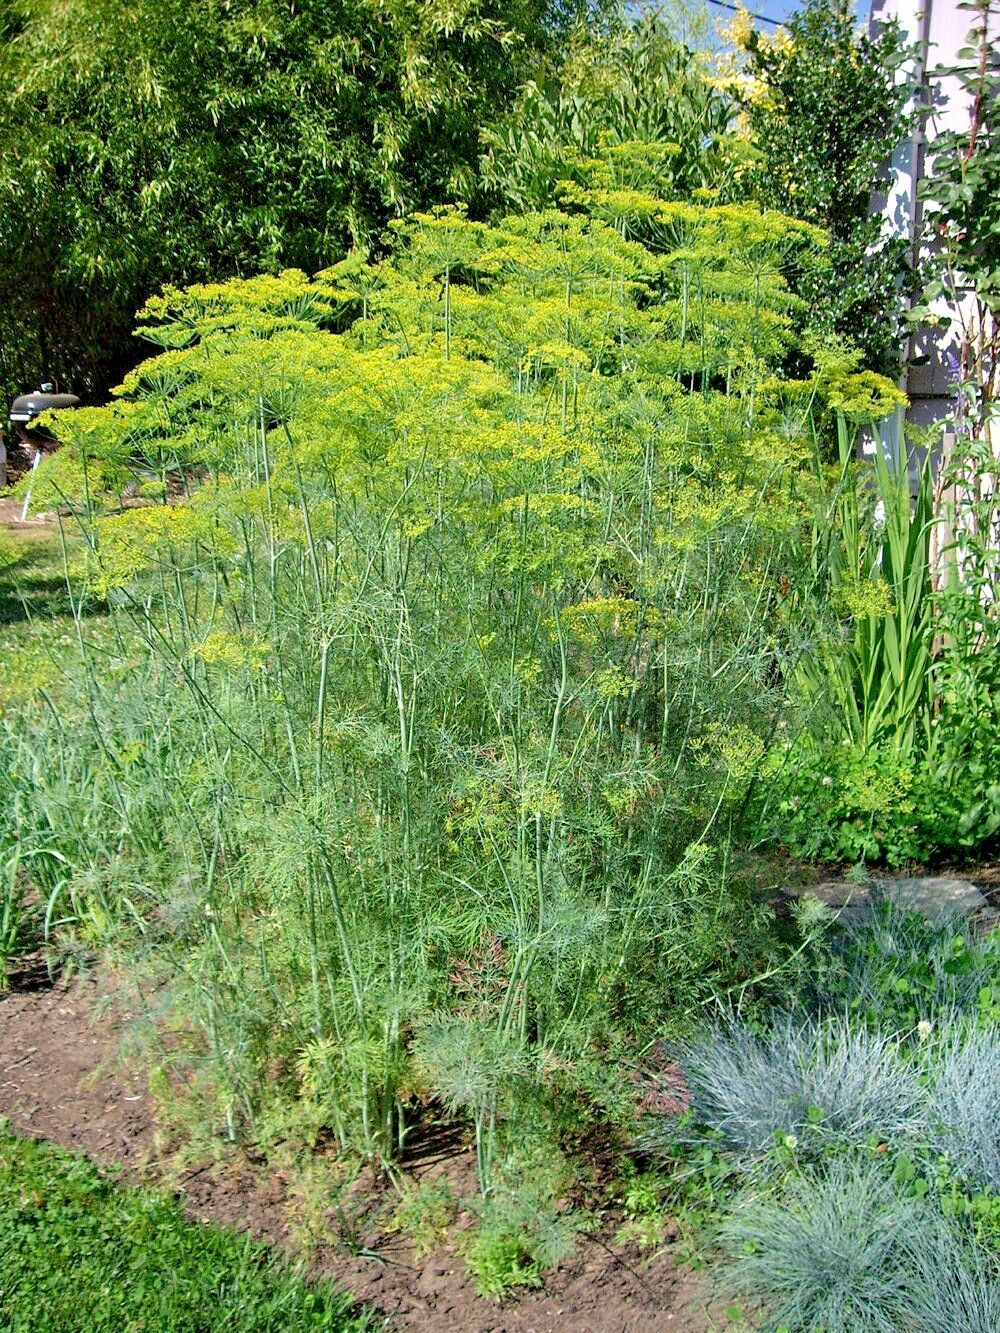 Primary image for SHIPPED FROM US 600+MAMMOTH LONG ISLAND DILL Culinary Medicinal Herb Seeds, CB08